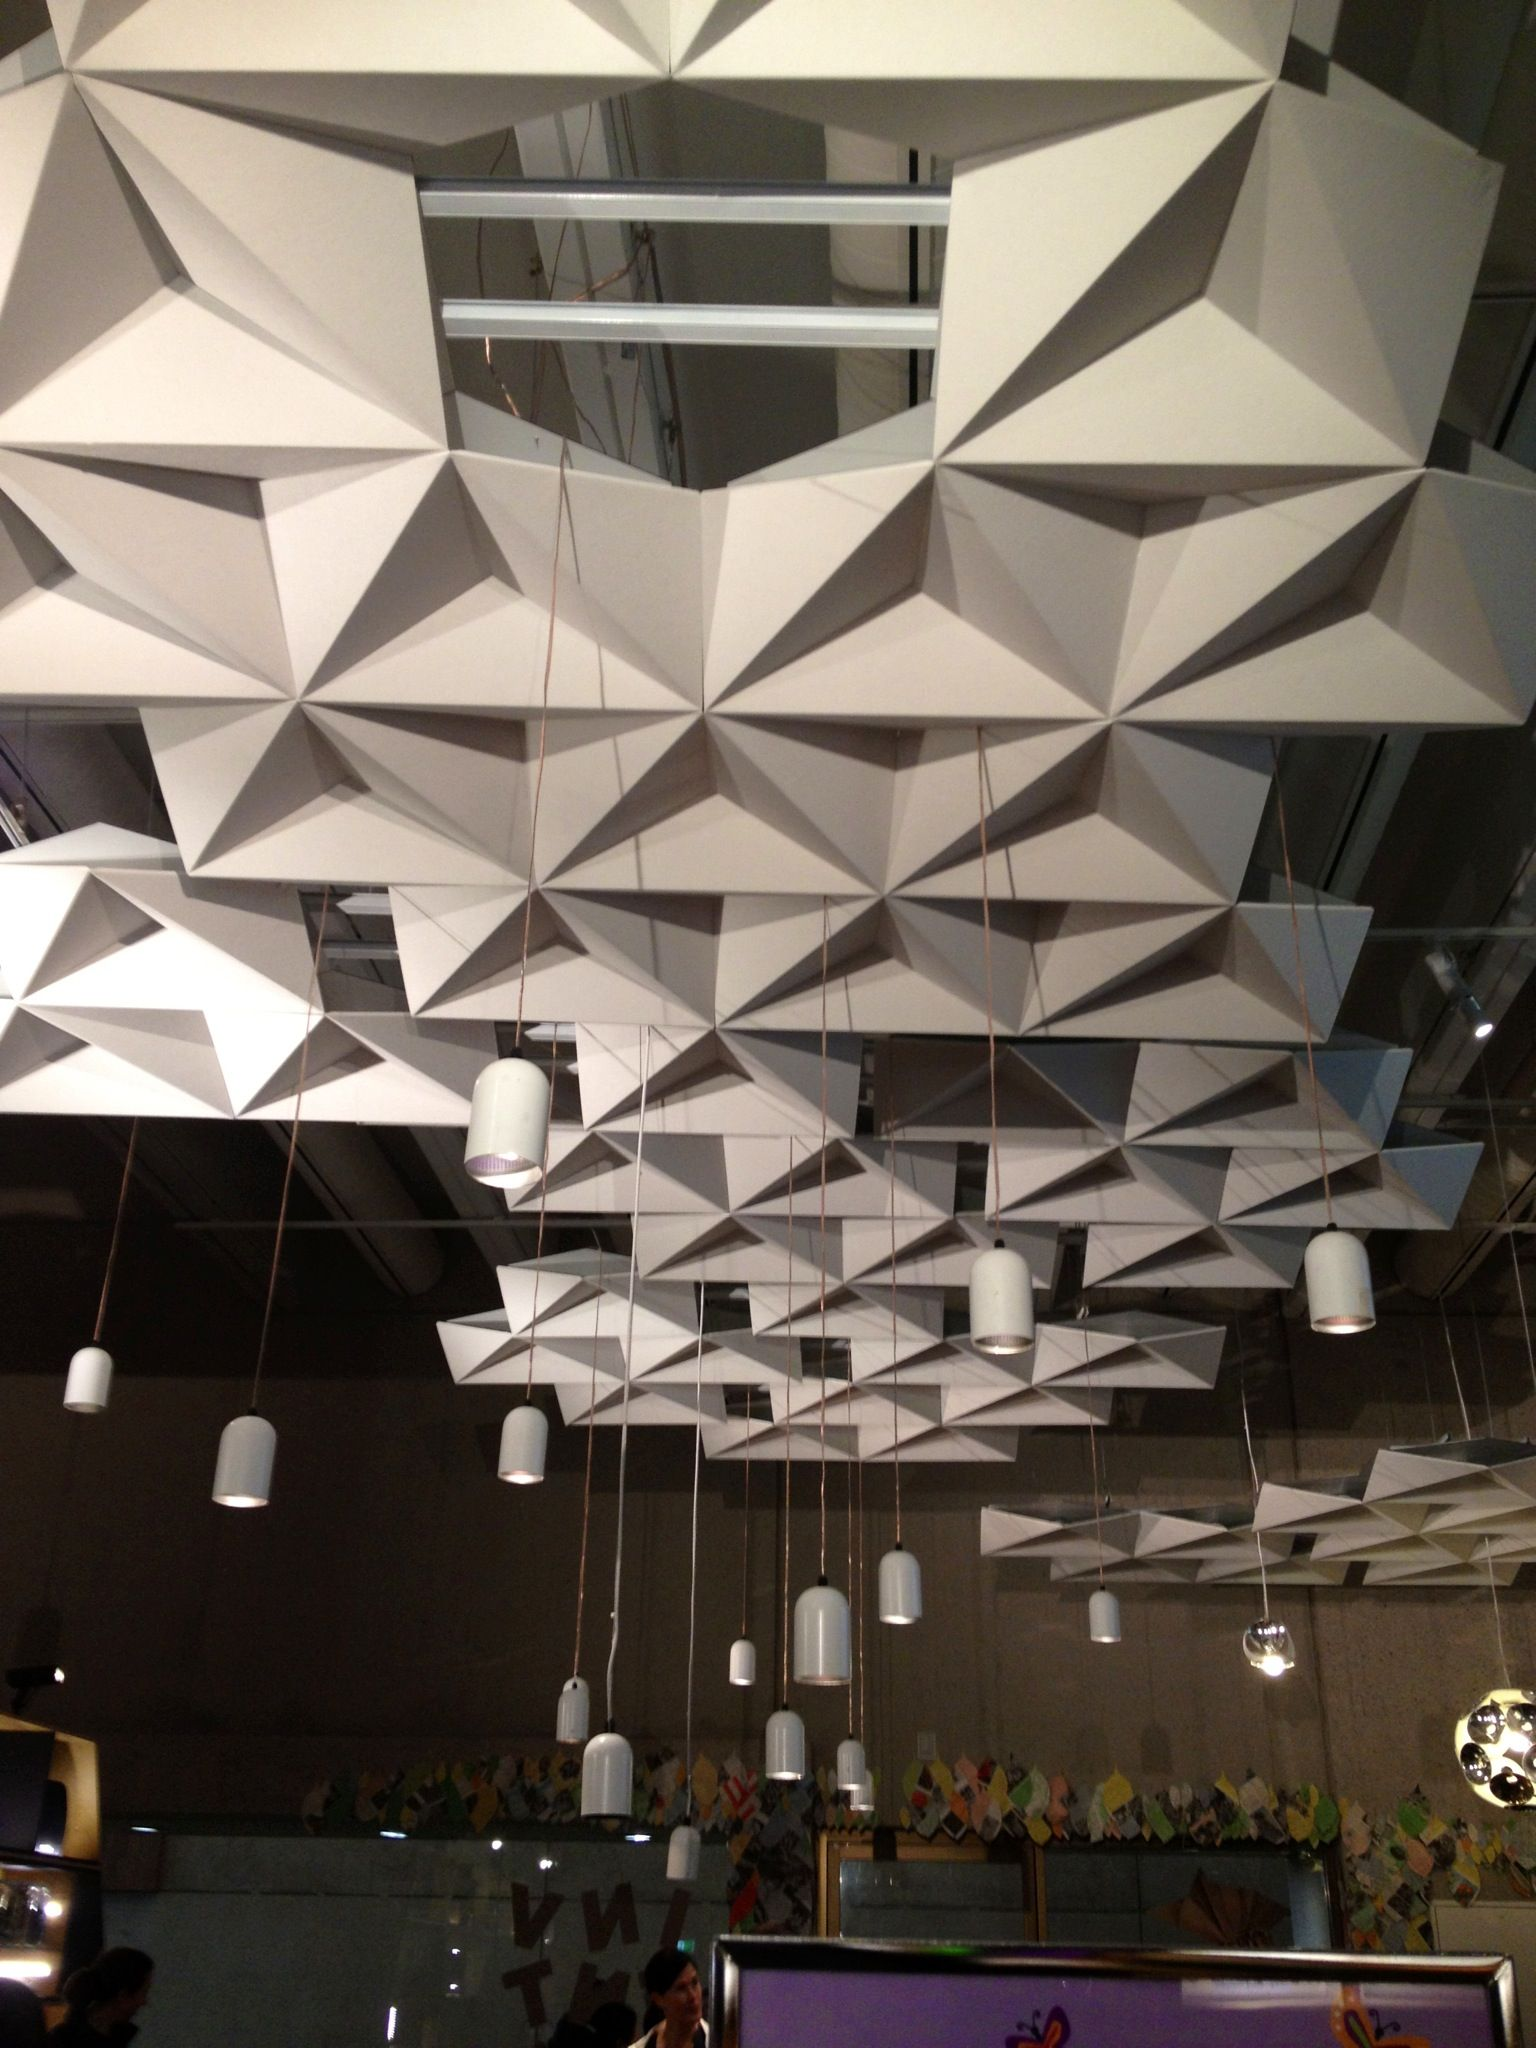 Lighting + ceiling treatment. QLD museum. | Interior Spaces & Places ...